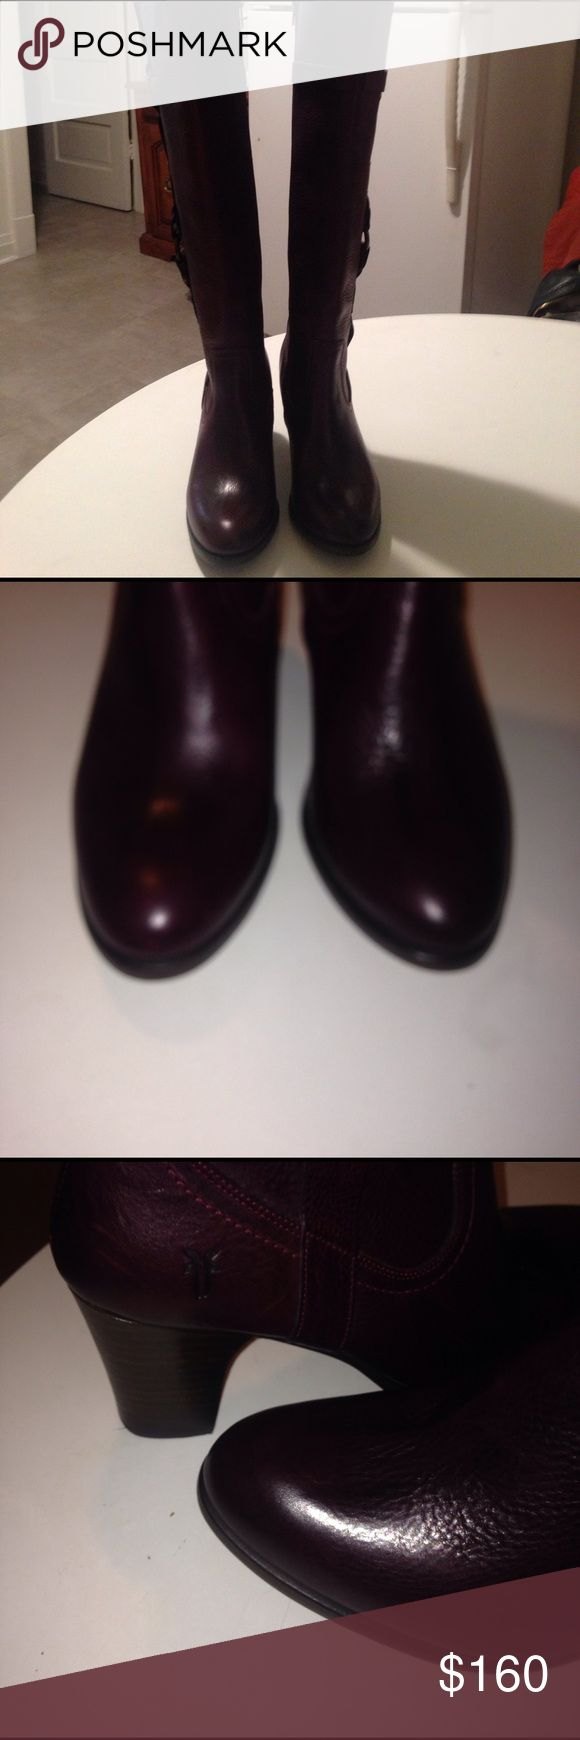 NWOT FRYE KNEE HIGH BOOTS💥💥sale Burgundy pebble leather. Belted & hook detail on outer leg. Zips on inner leg. Logo on outer heel.  Leather signature soles. Signature hardware.  Belted top rim design. 14' calfs. Has small platforms. 3' heels. Minor scratch on one sole from tag removal. Brand new never worn. A beauty Frye Shoes Winter & Rain Boots